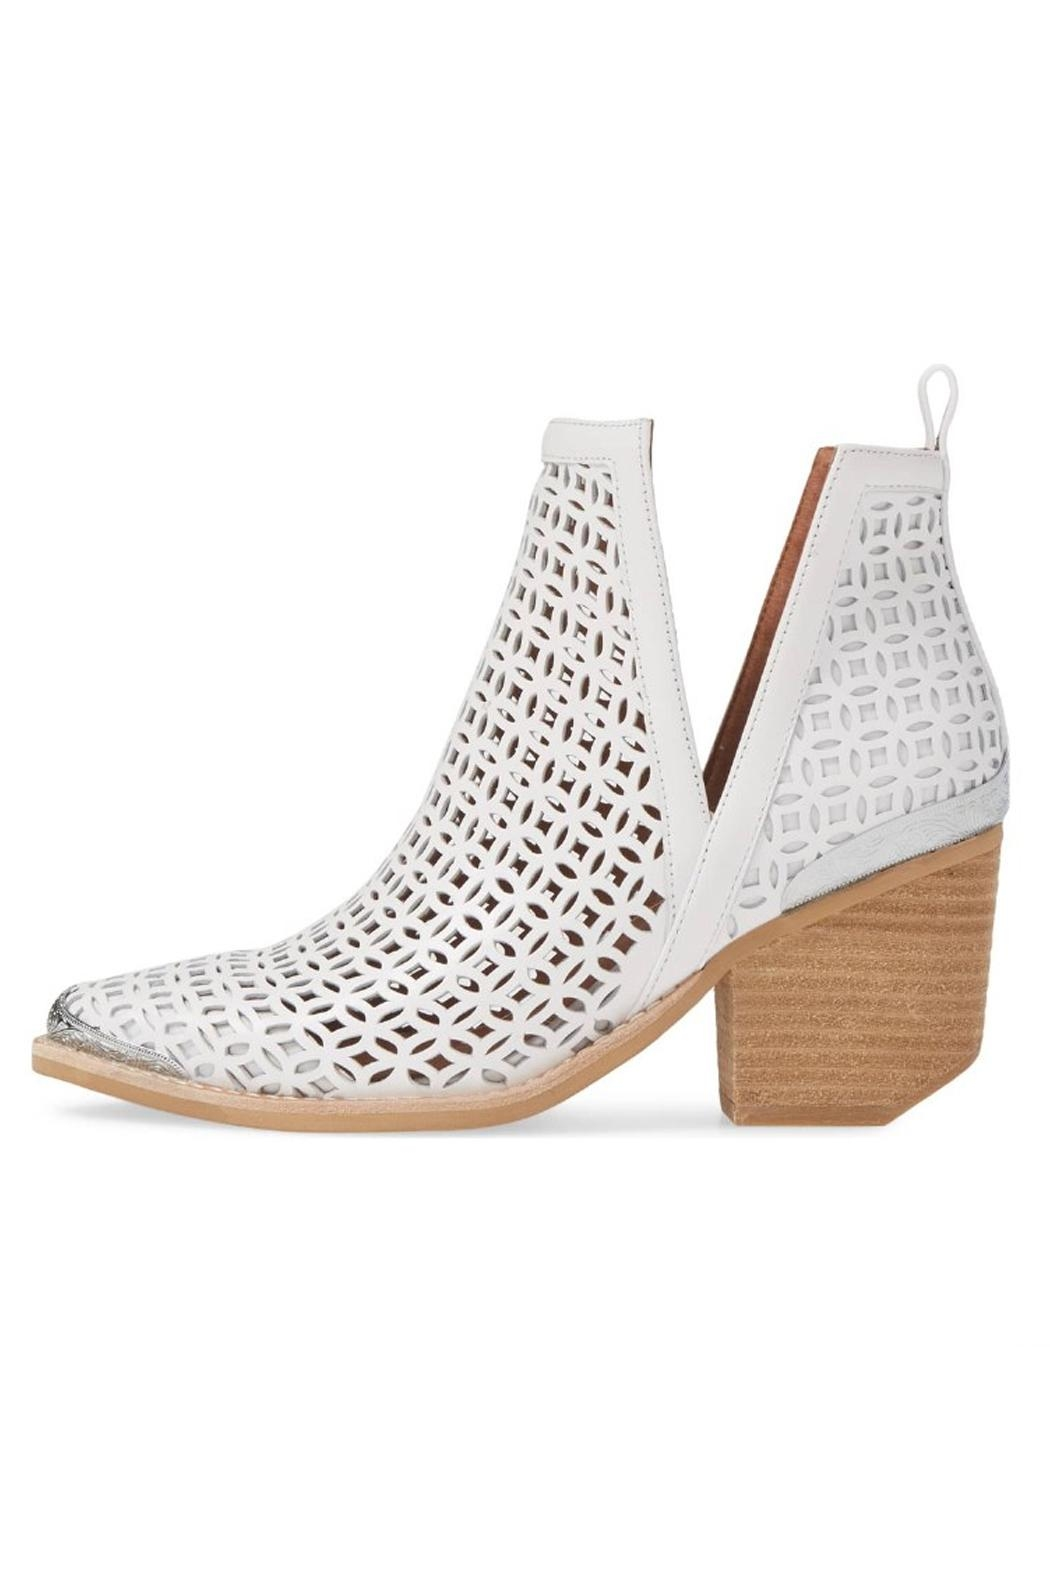 Jeffrey Campbell White Perforated Booties - Main Image